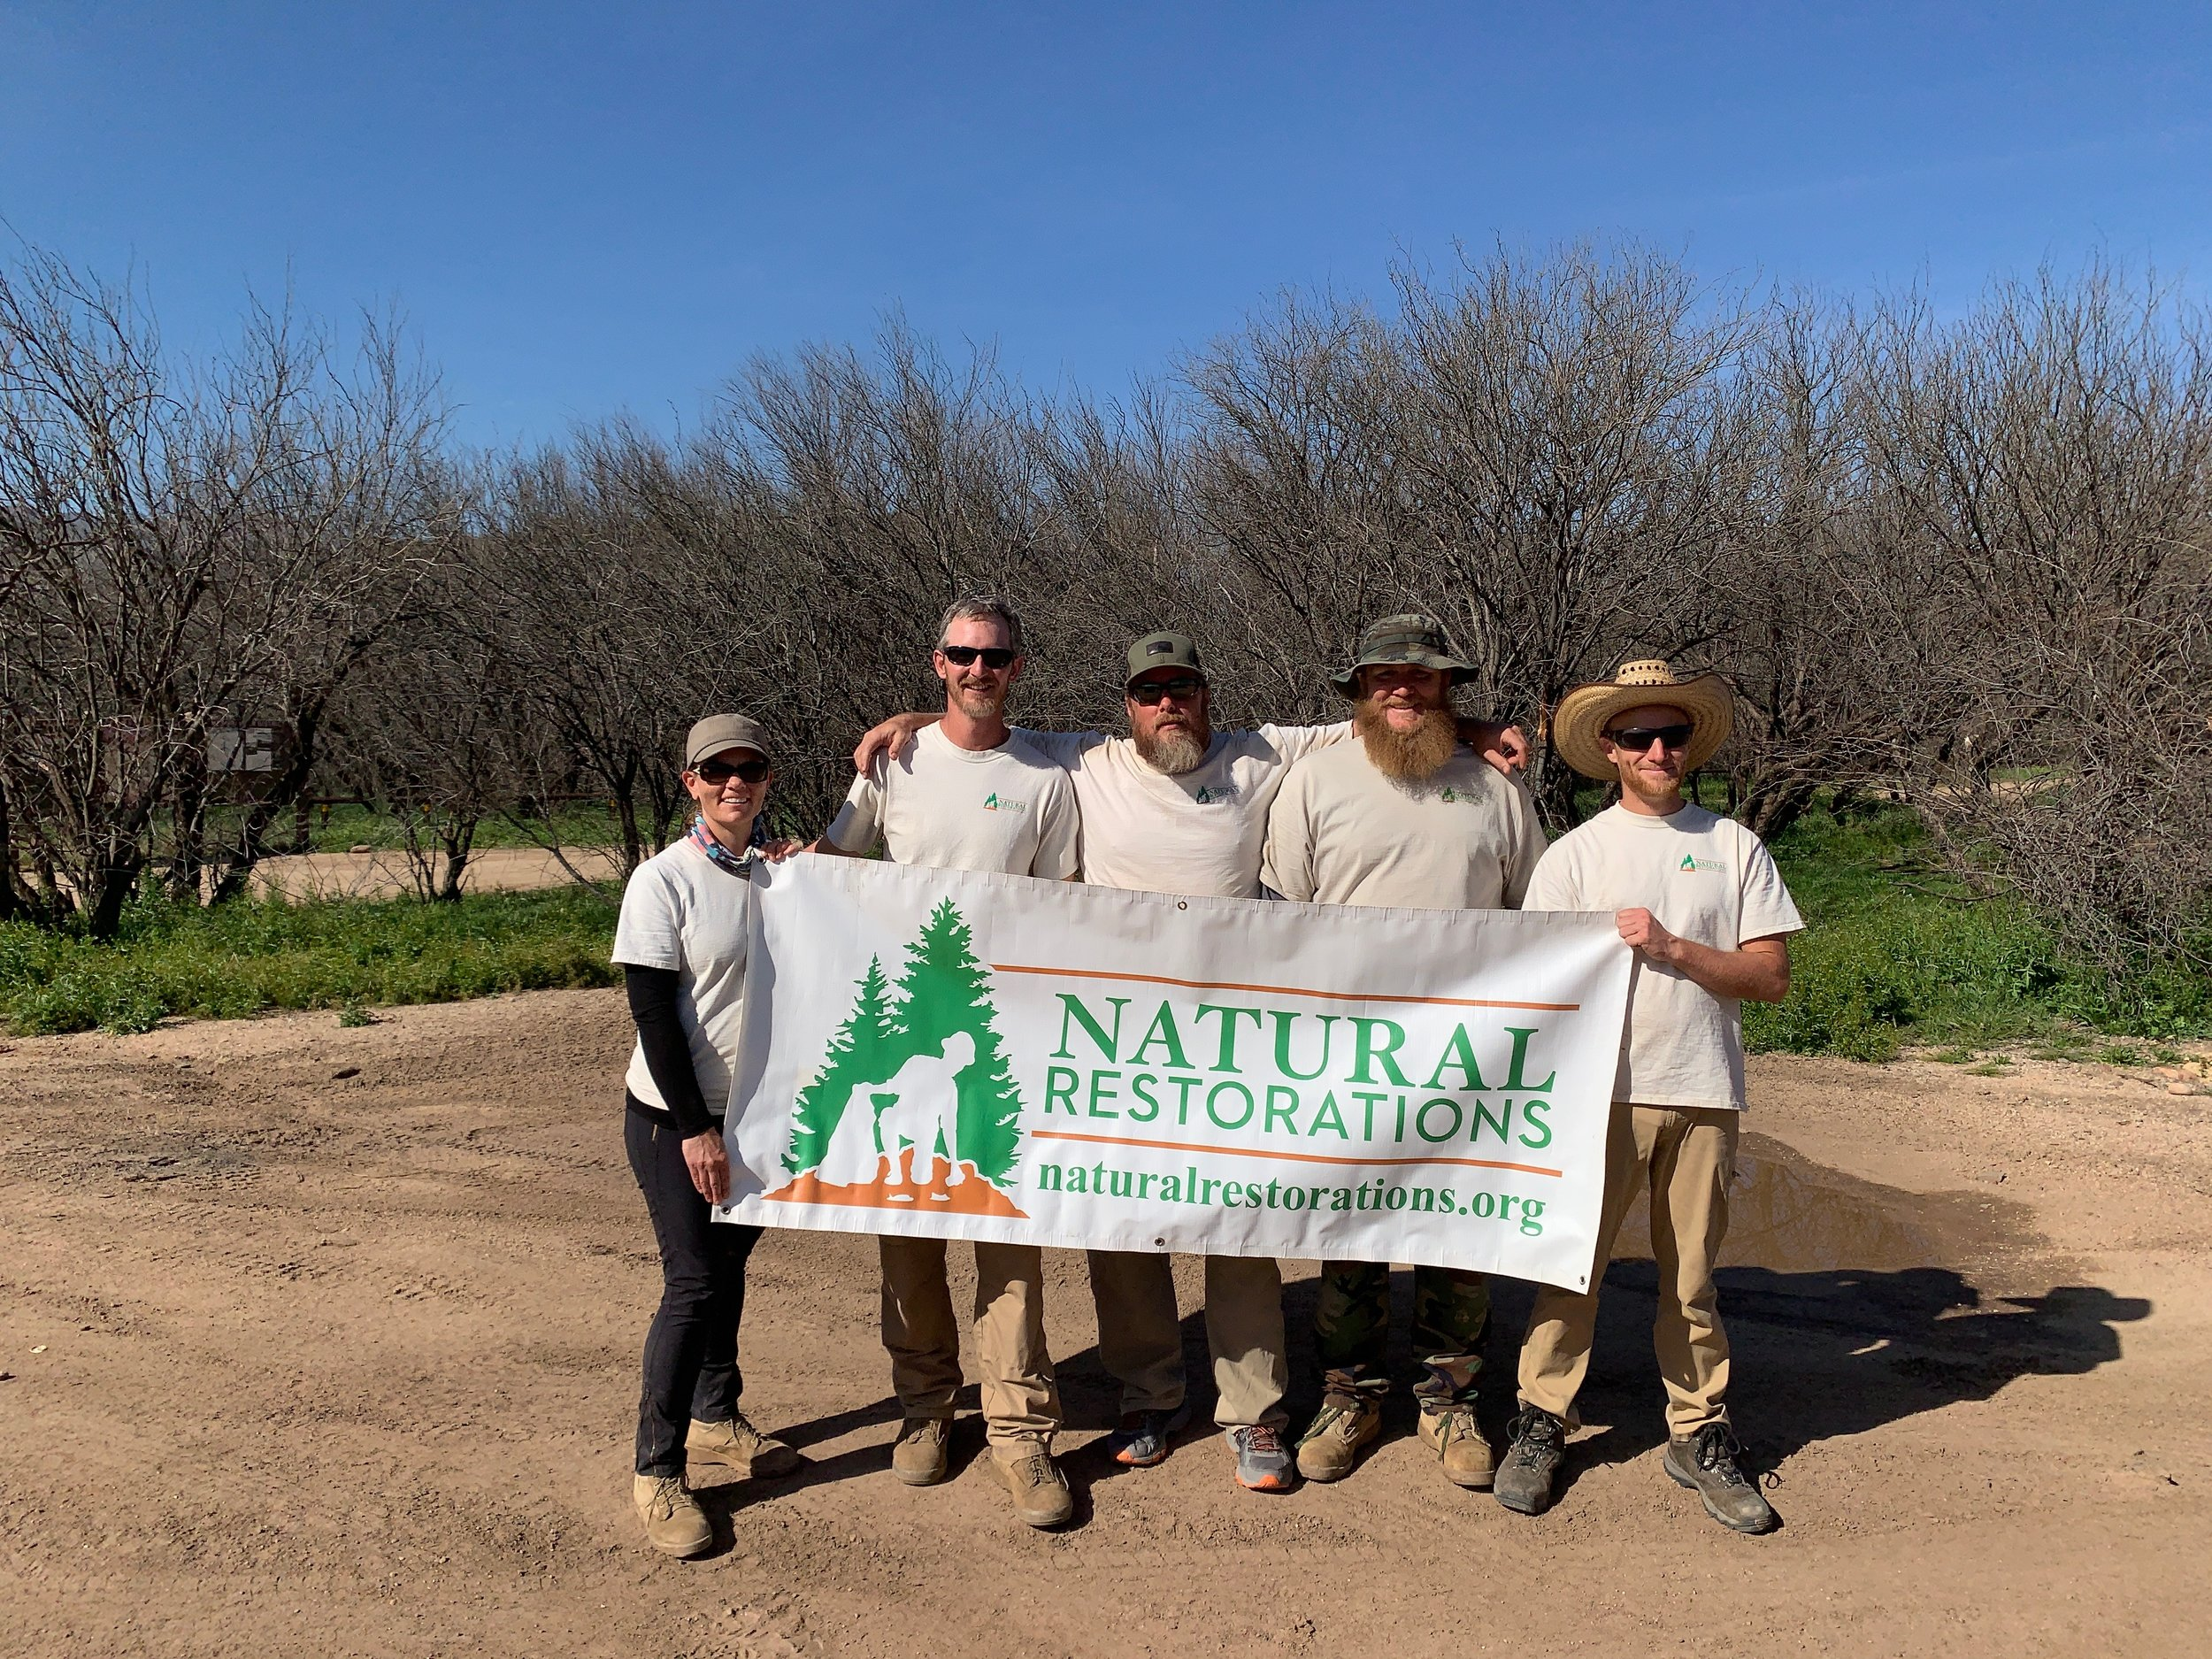 Mesquite Wash OHV Area - February 2019 - 2.63 tons removed!Check back soon for all of the details & pictures